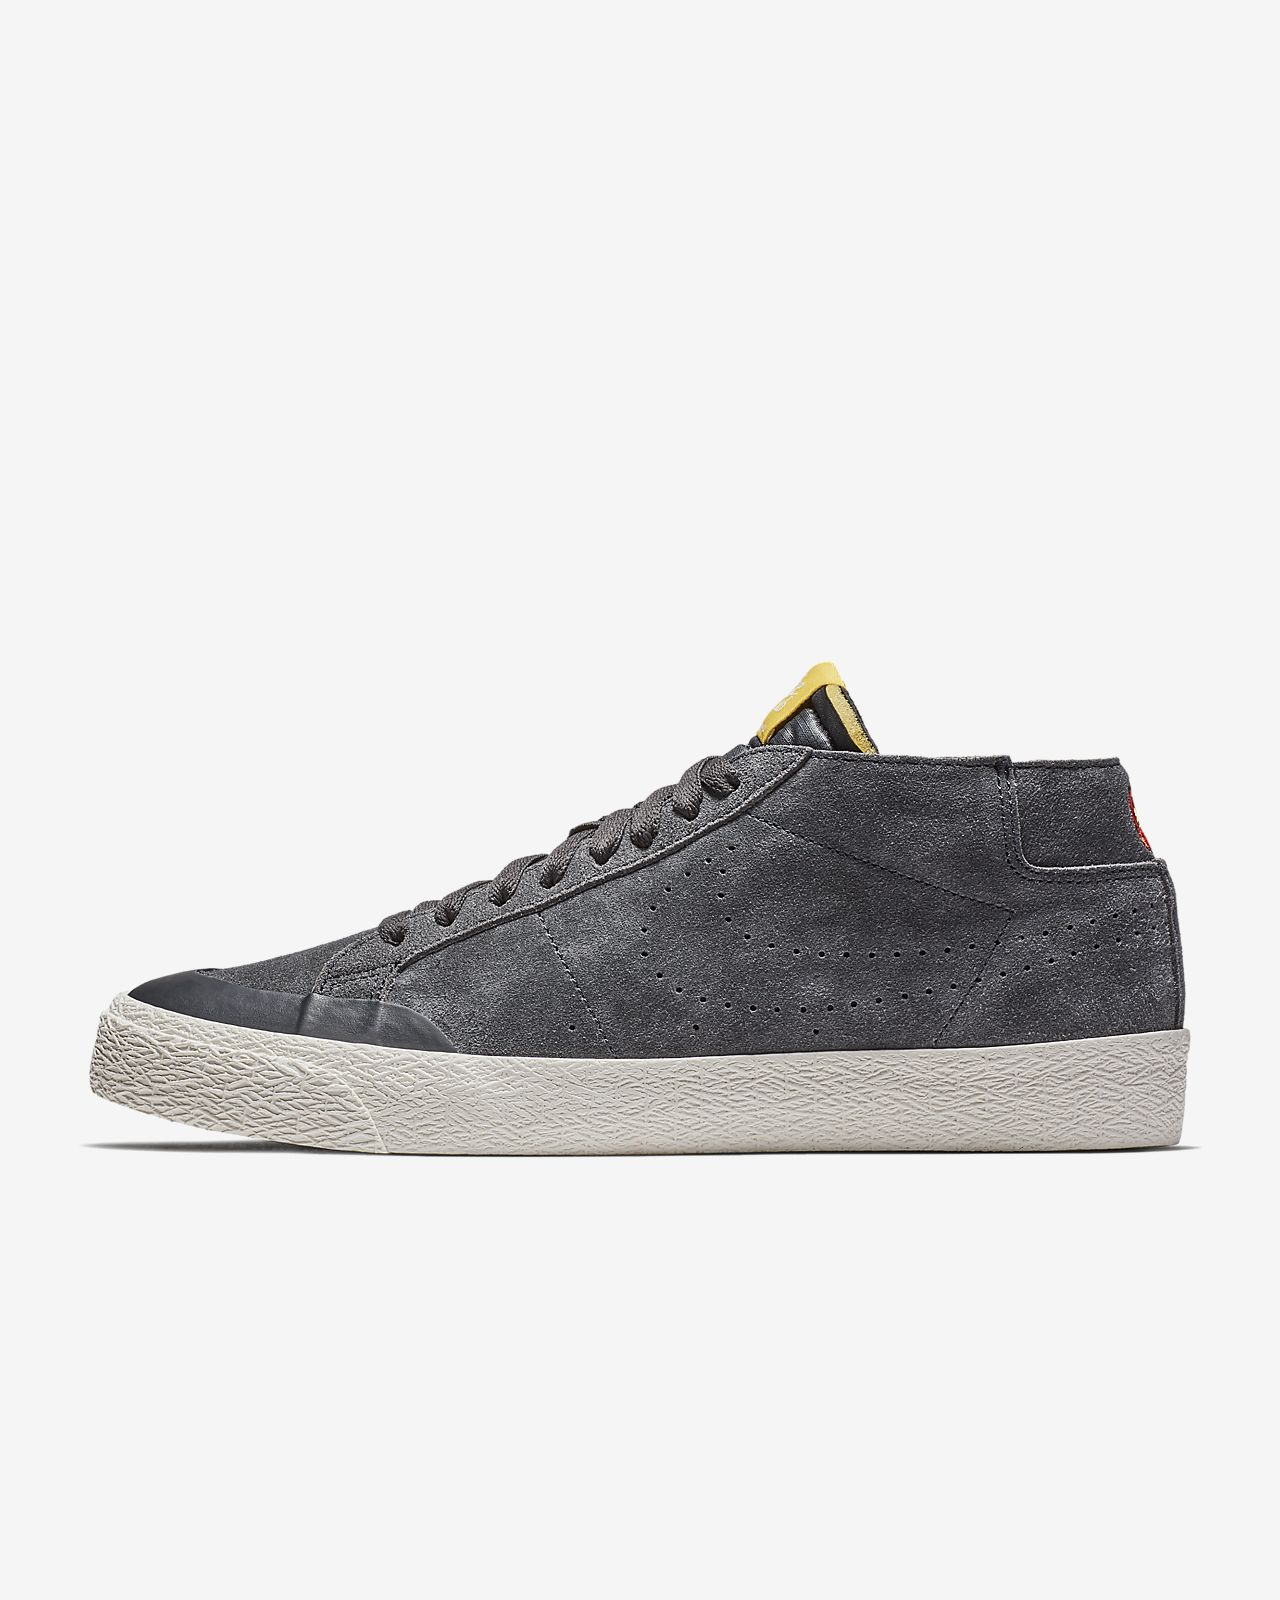 uk availability 685ff 5831f Nike SB Zoom Blazer Chukka XT Men's Skateboarding Shoe